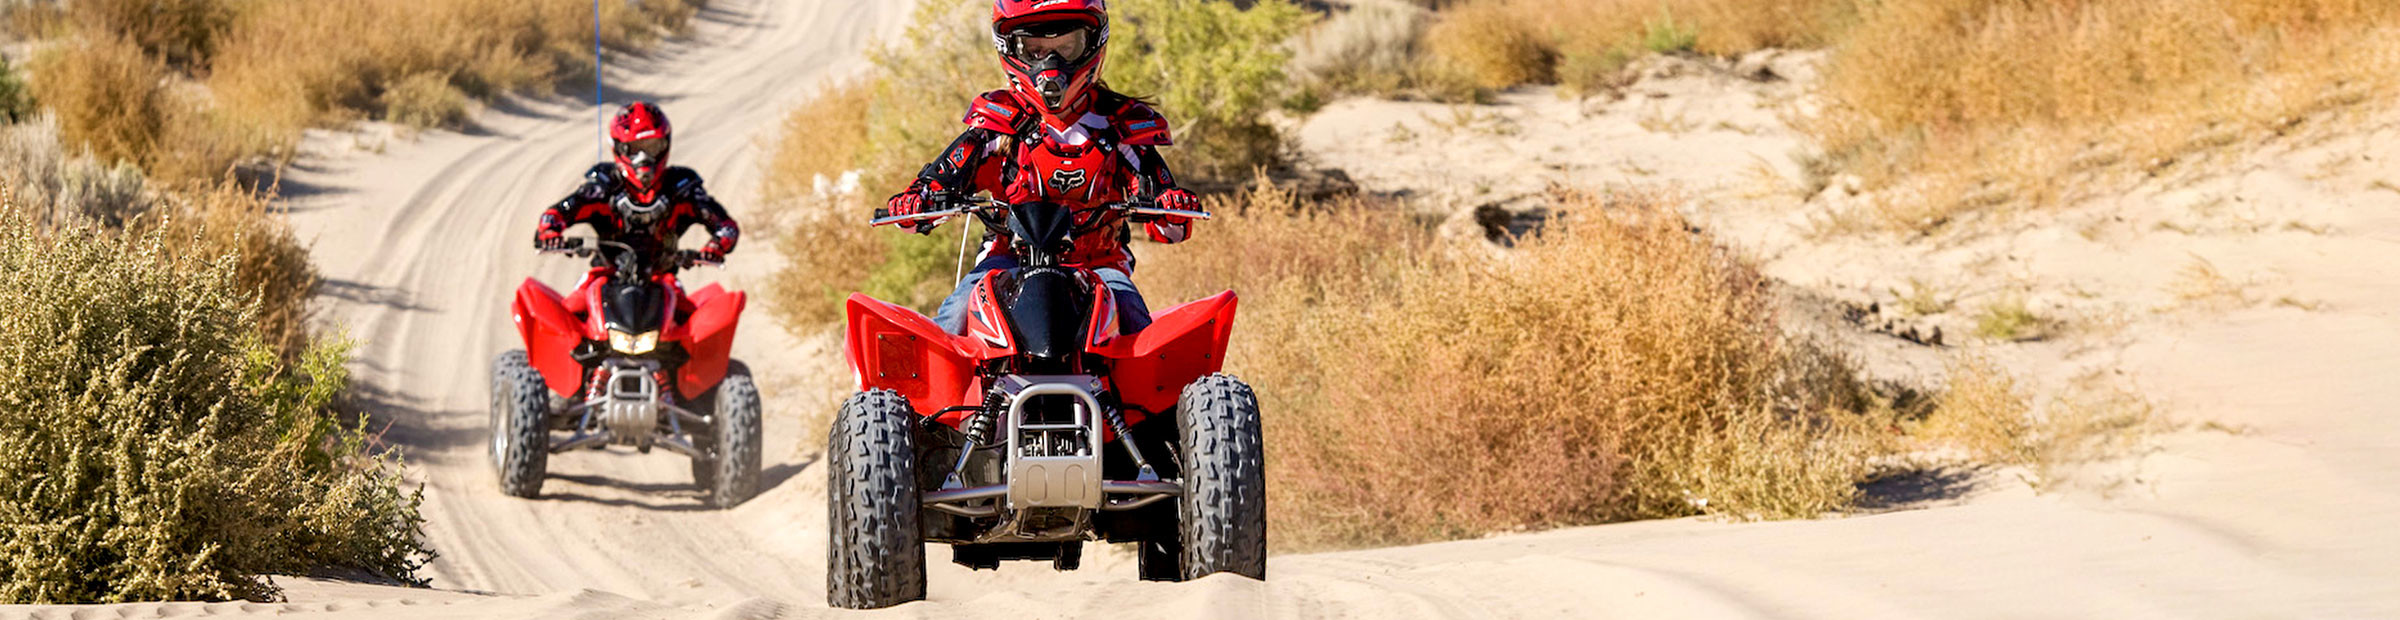 2021 Honda ATV Collection